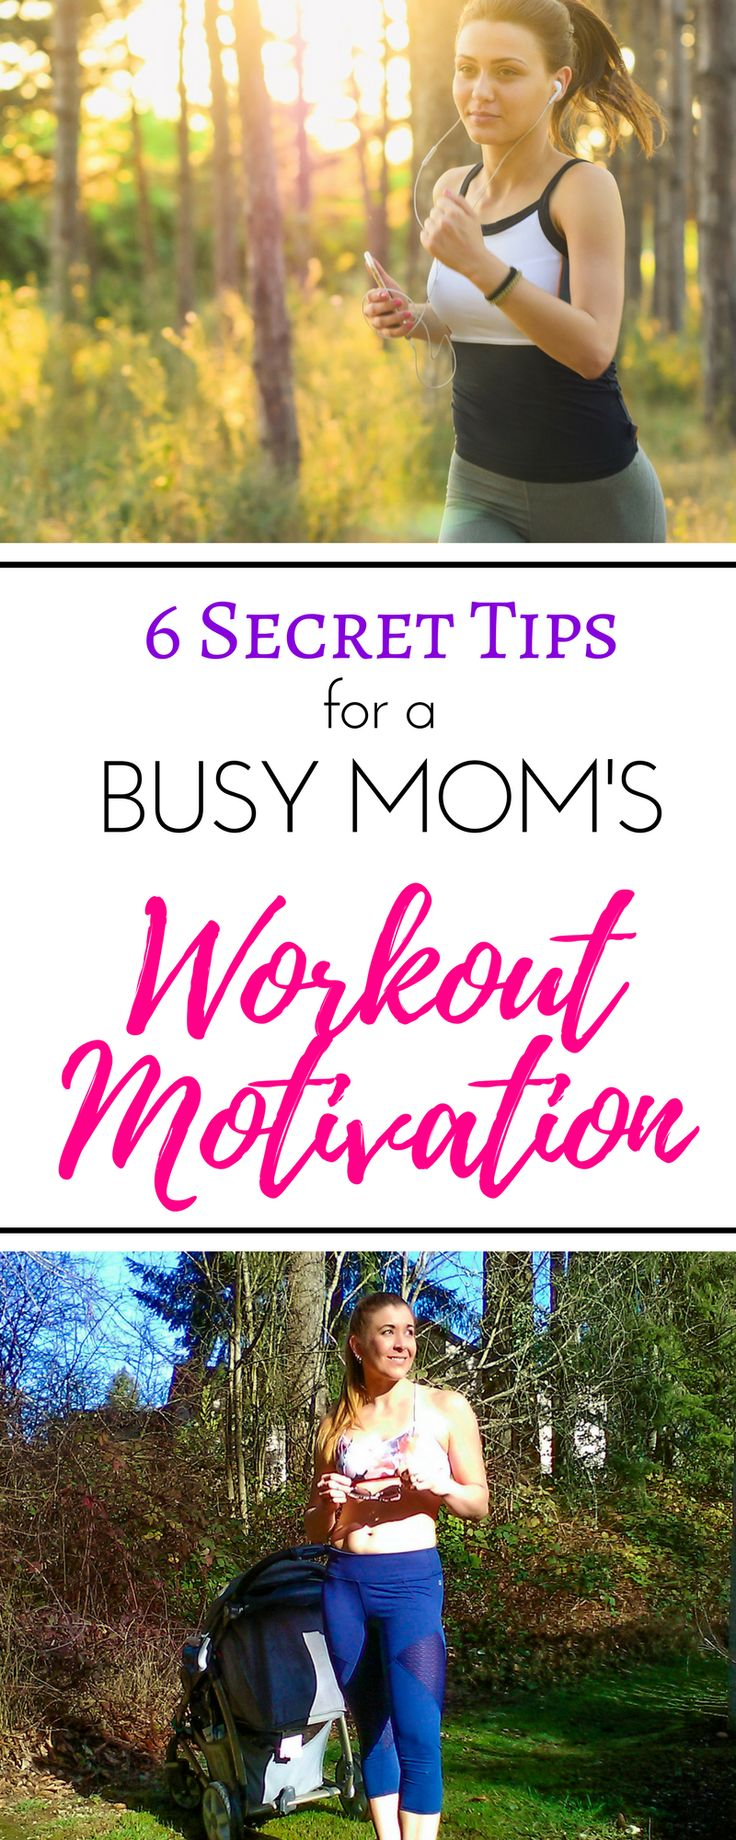 Brilliant ideas and tips to find workout motivation for women and stay motivated! Learn tricks of how to get motivated to exercise for beginners at home for weightloss. These amazing tips for moms with kids or with baby will inspire you for your health and to lose weight postpartum. #motivationmonday #getmotivated #loseweight #exercise